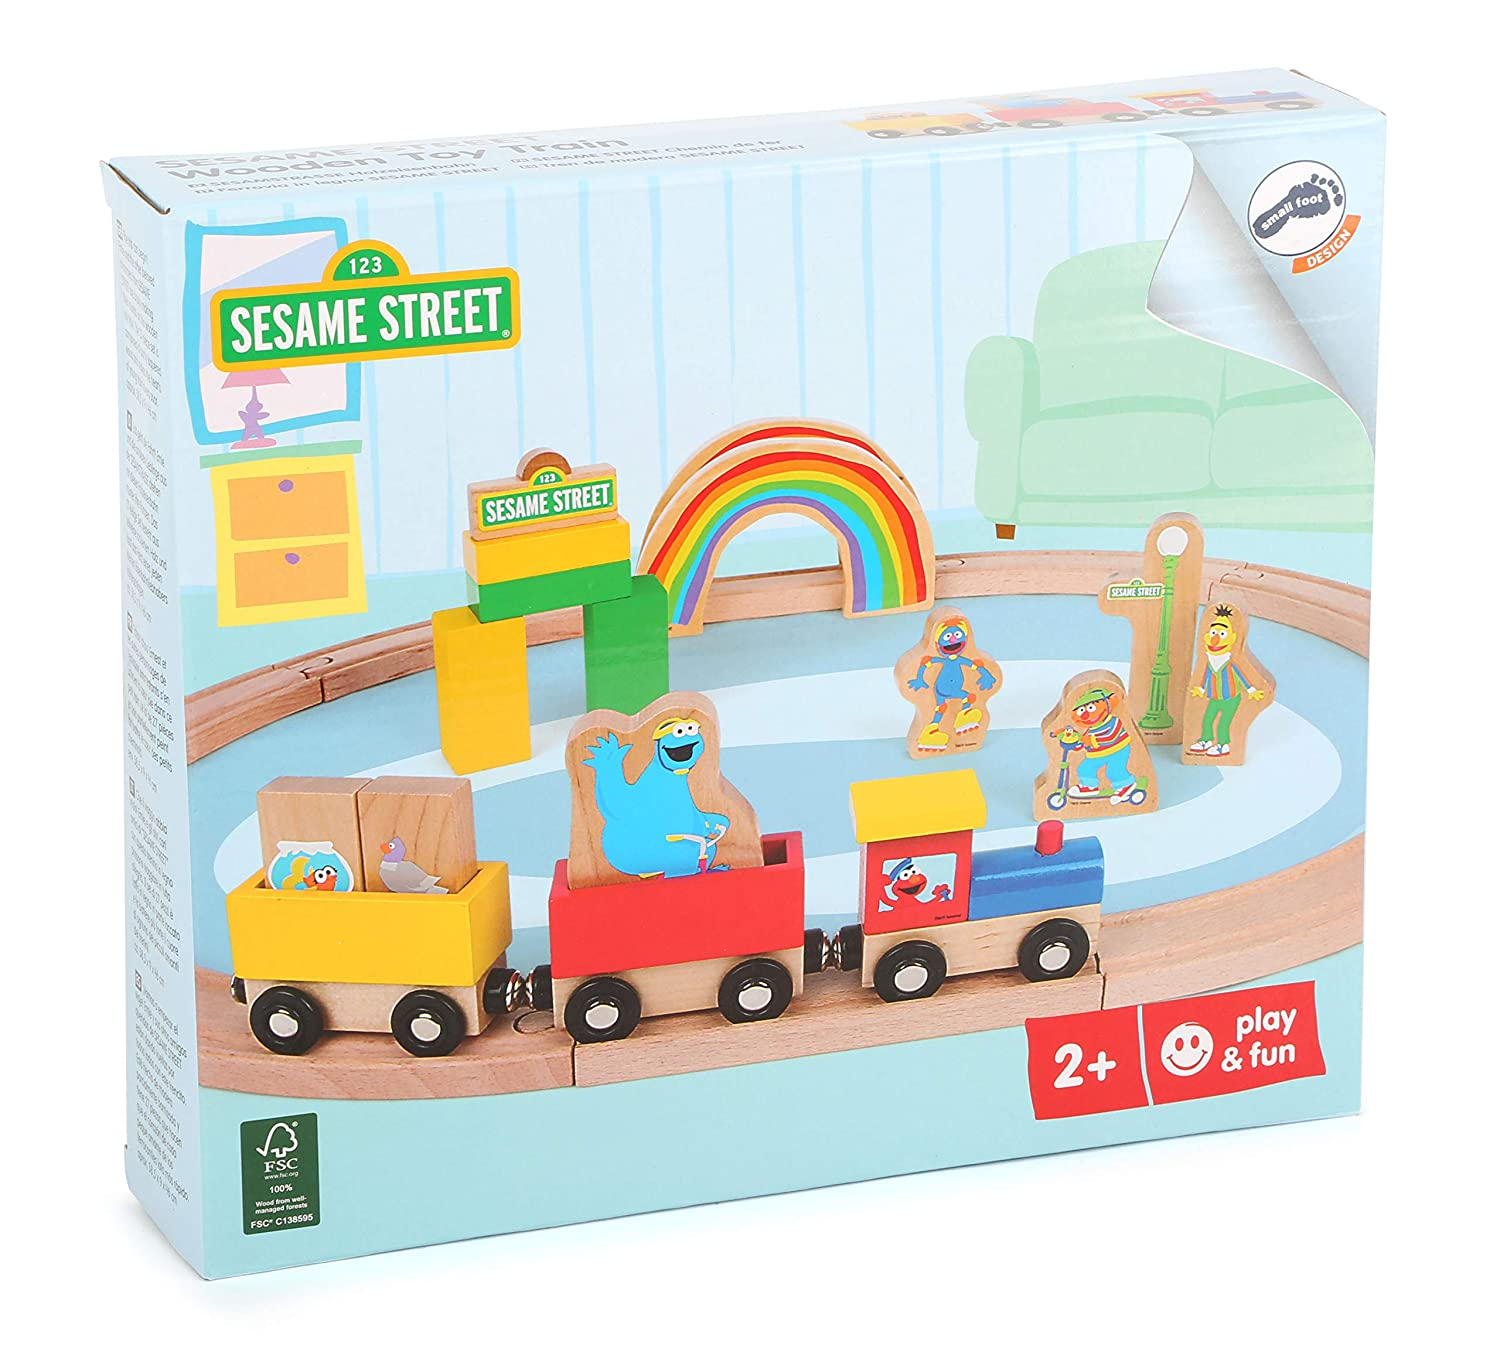 Small Foot 10964 Sesame Street Set Incl combinable with Other Wooden Toy Train Systems 100/% FSC-Certified Exclusively Brand Multicolour Accessories and Figurines